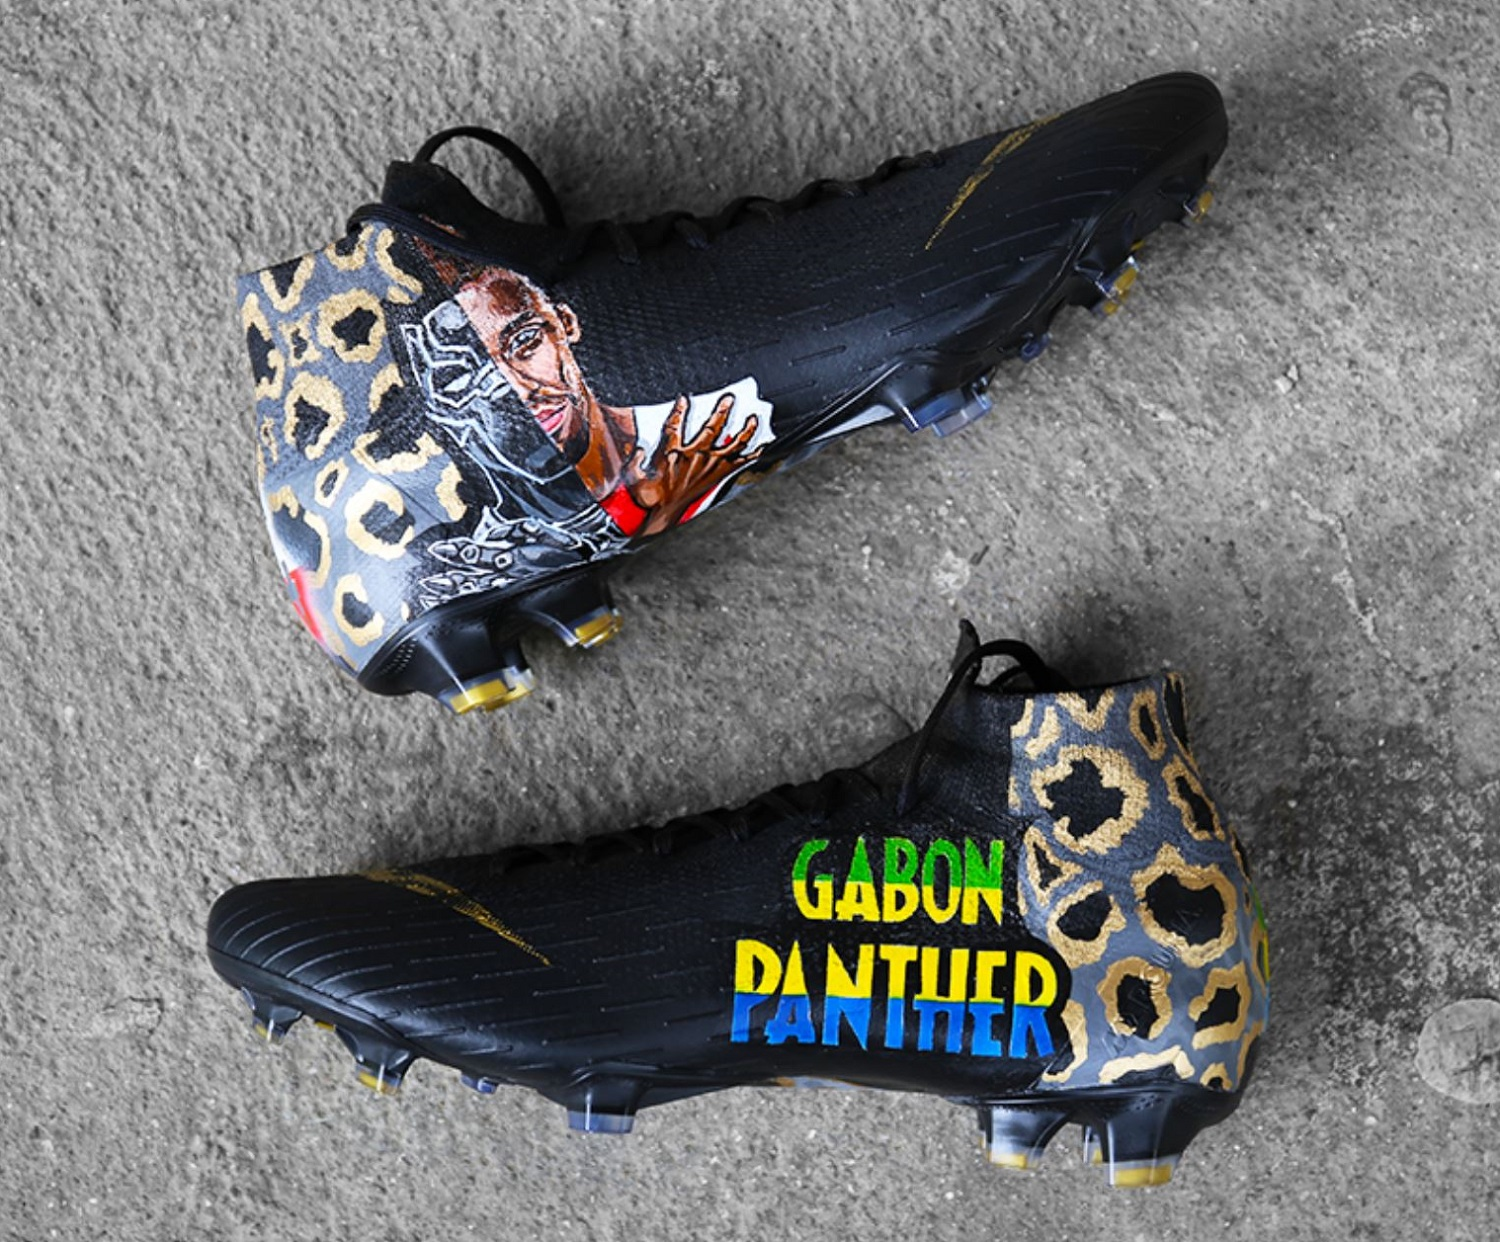 detailed look price reduced new photos Aubameyang Gabon Panther Superfly | Soccer Cleats 101